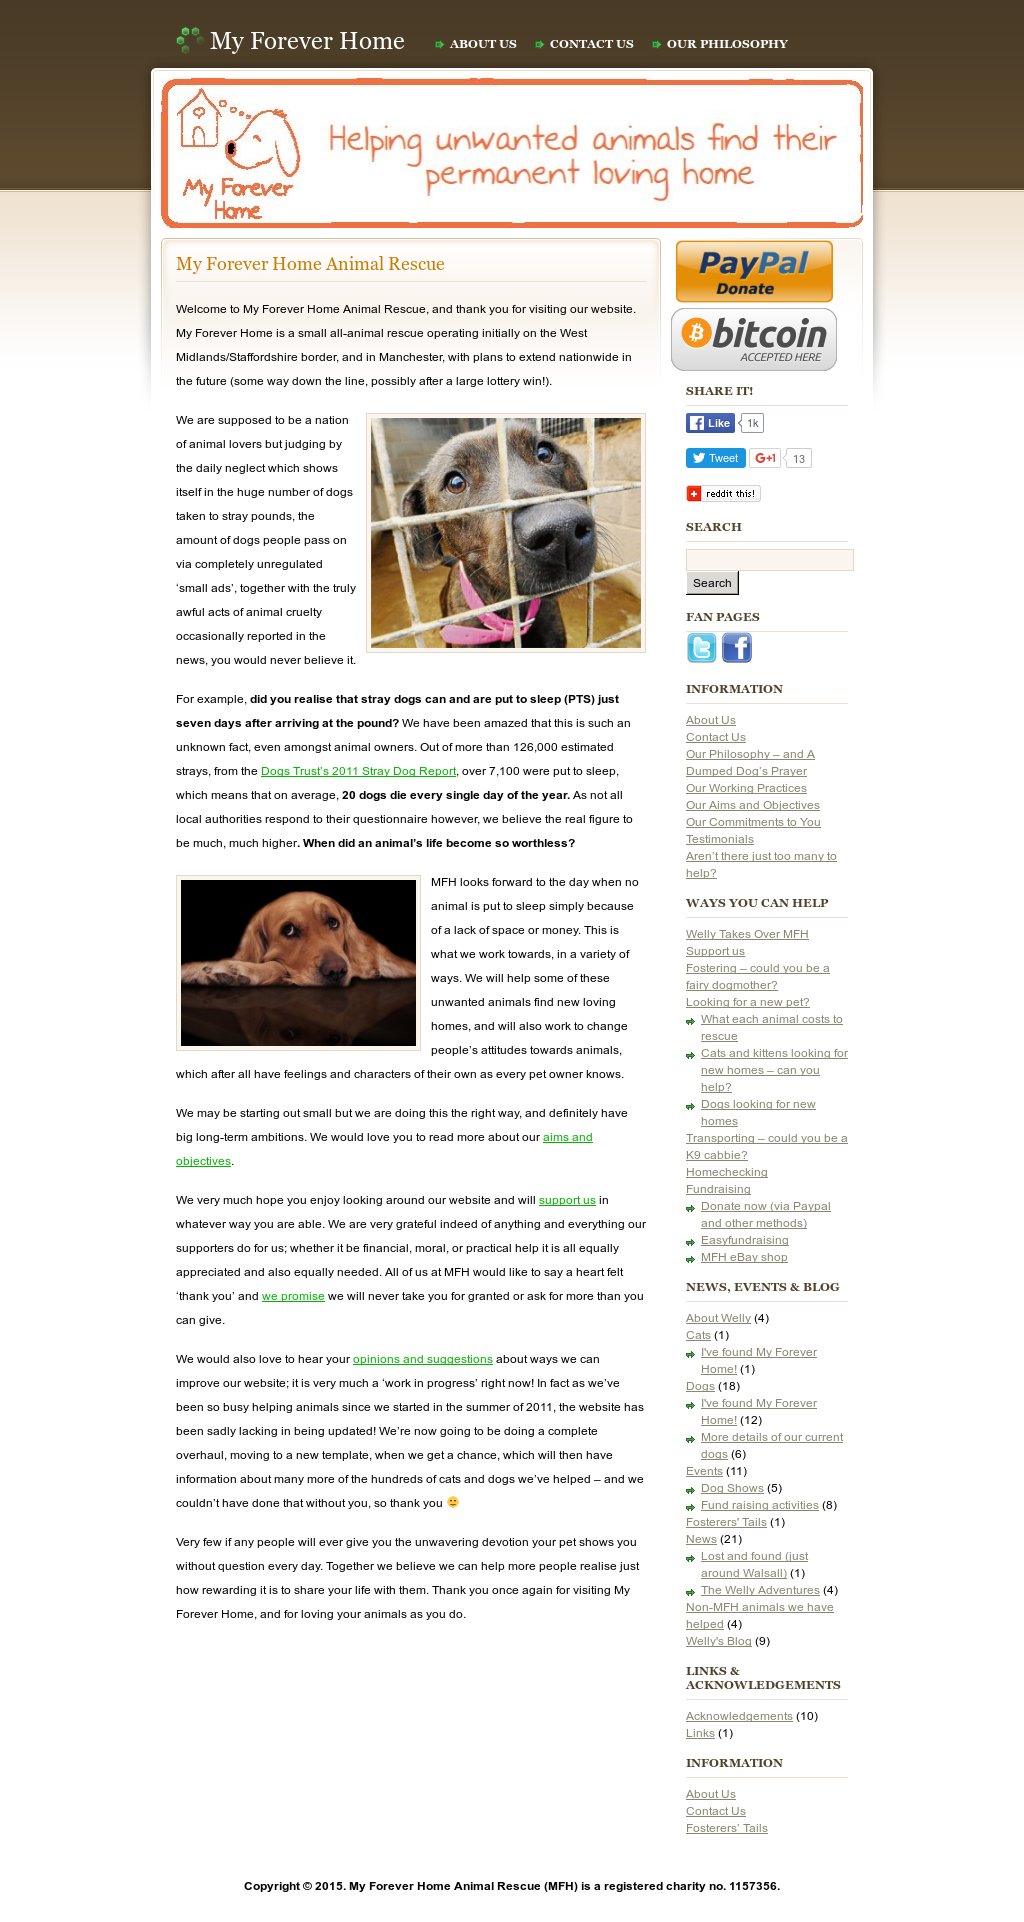 My Forever Home Animal Rescue (Mfh) Competitors, Revenue and